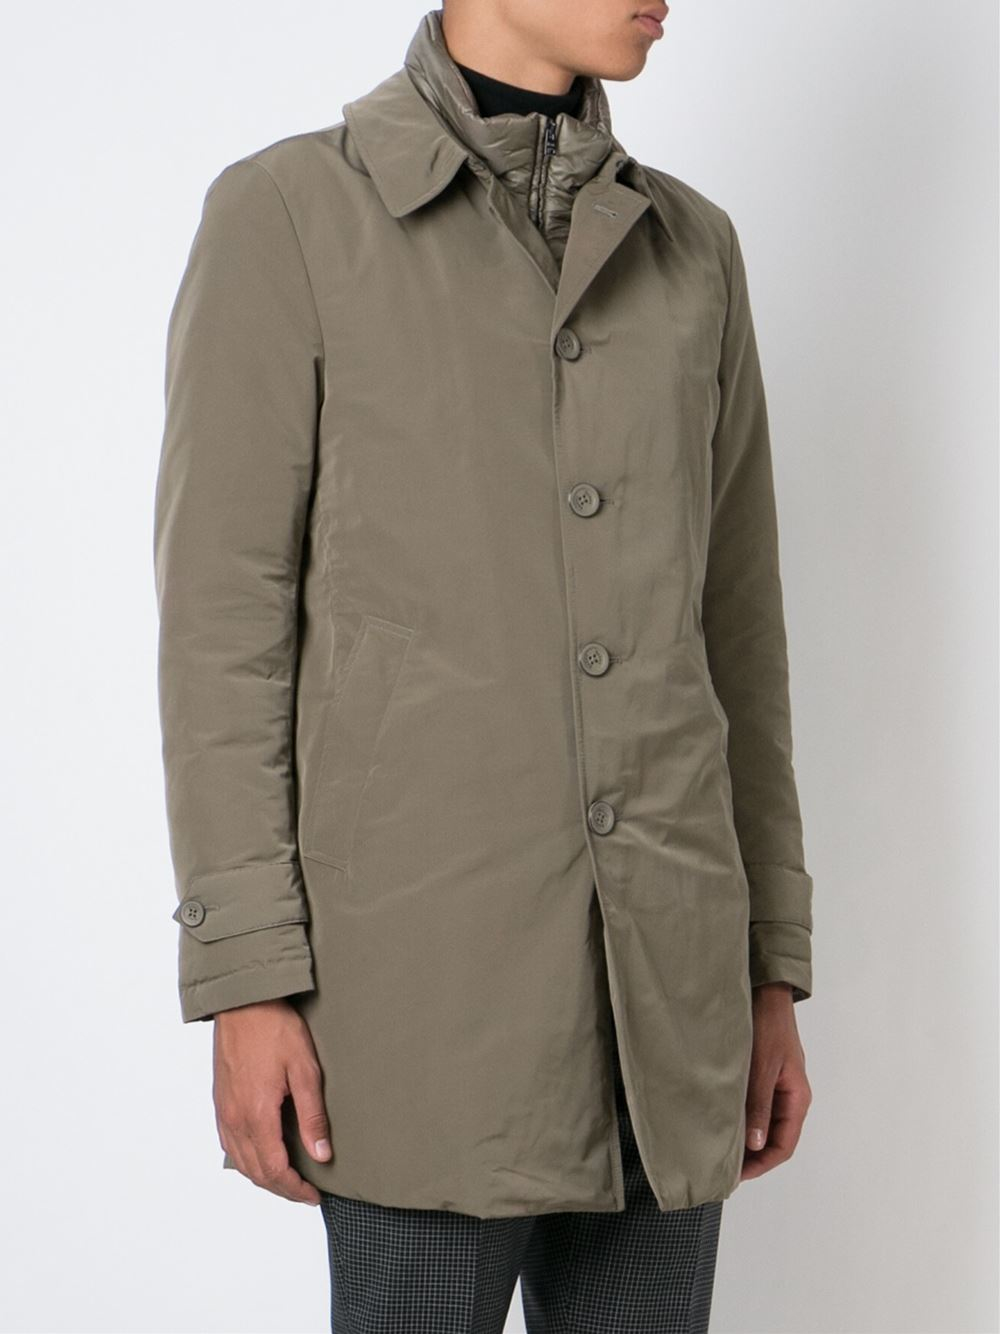 coats asian single men In the category men coats at yoox you can find pieces from the best brands the ideal is classic single-breasted coats hitting just above the knee.